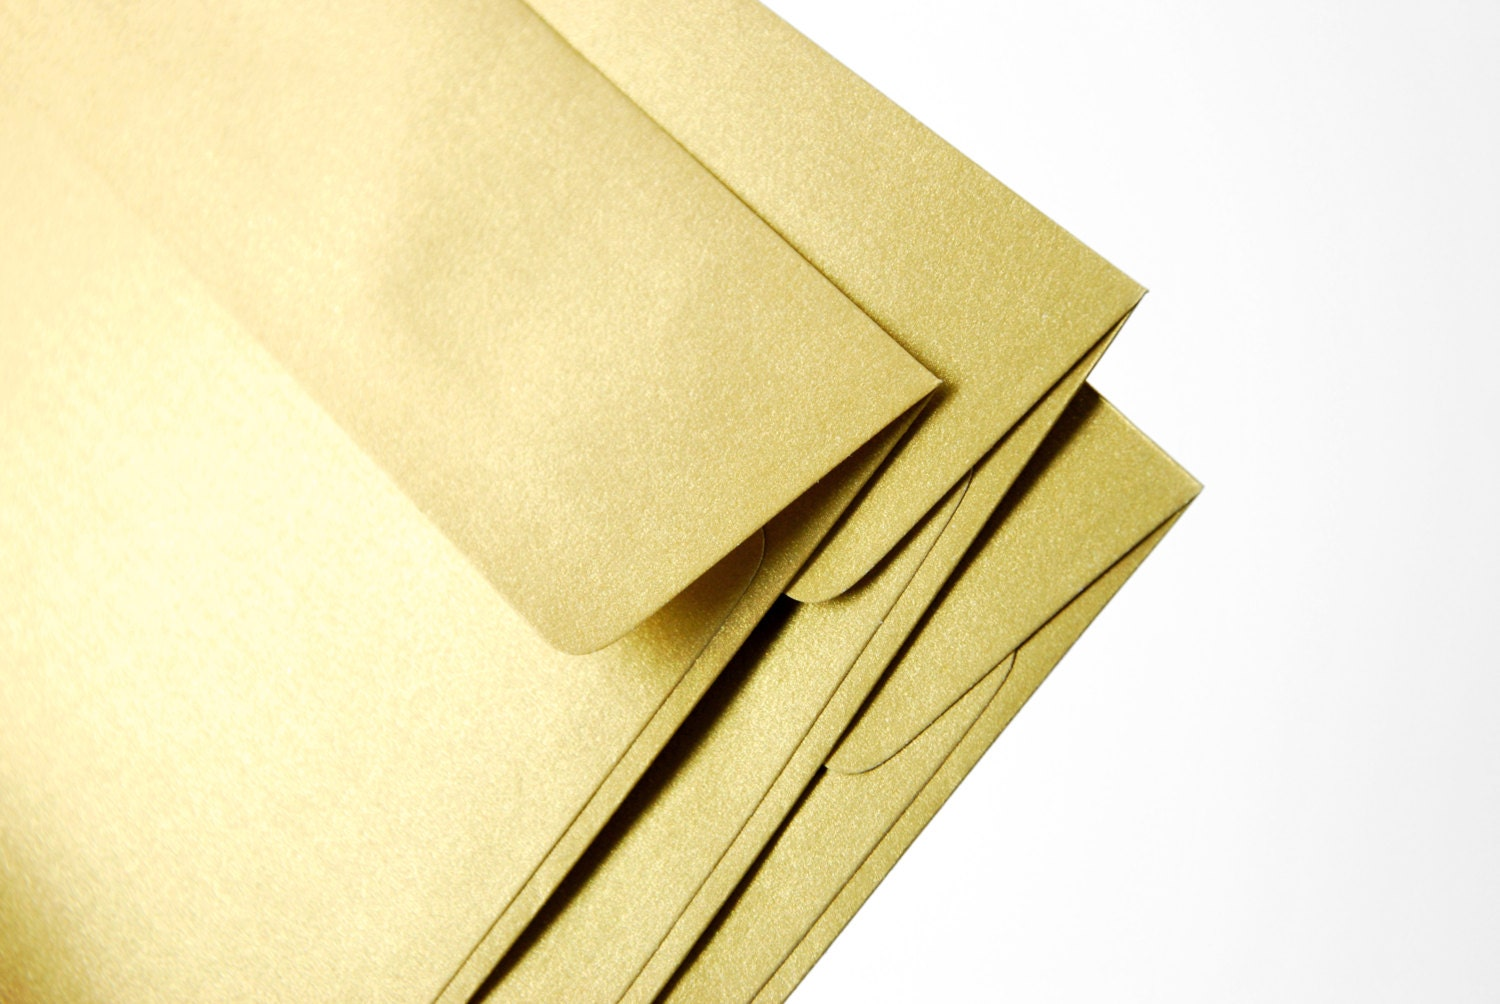 A7 5x7 gold envelopes perfect for 5x7 wedding zoom monicamarmolfo Gallery